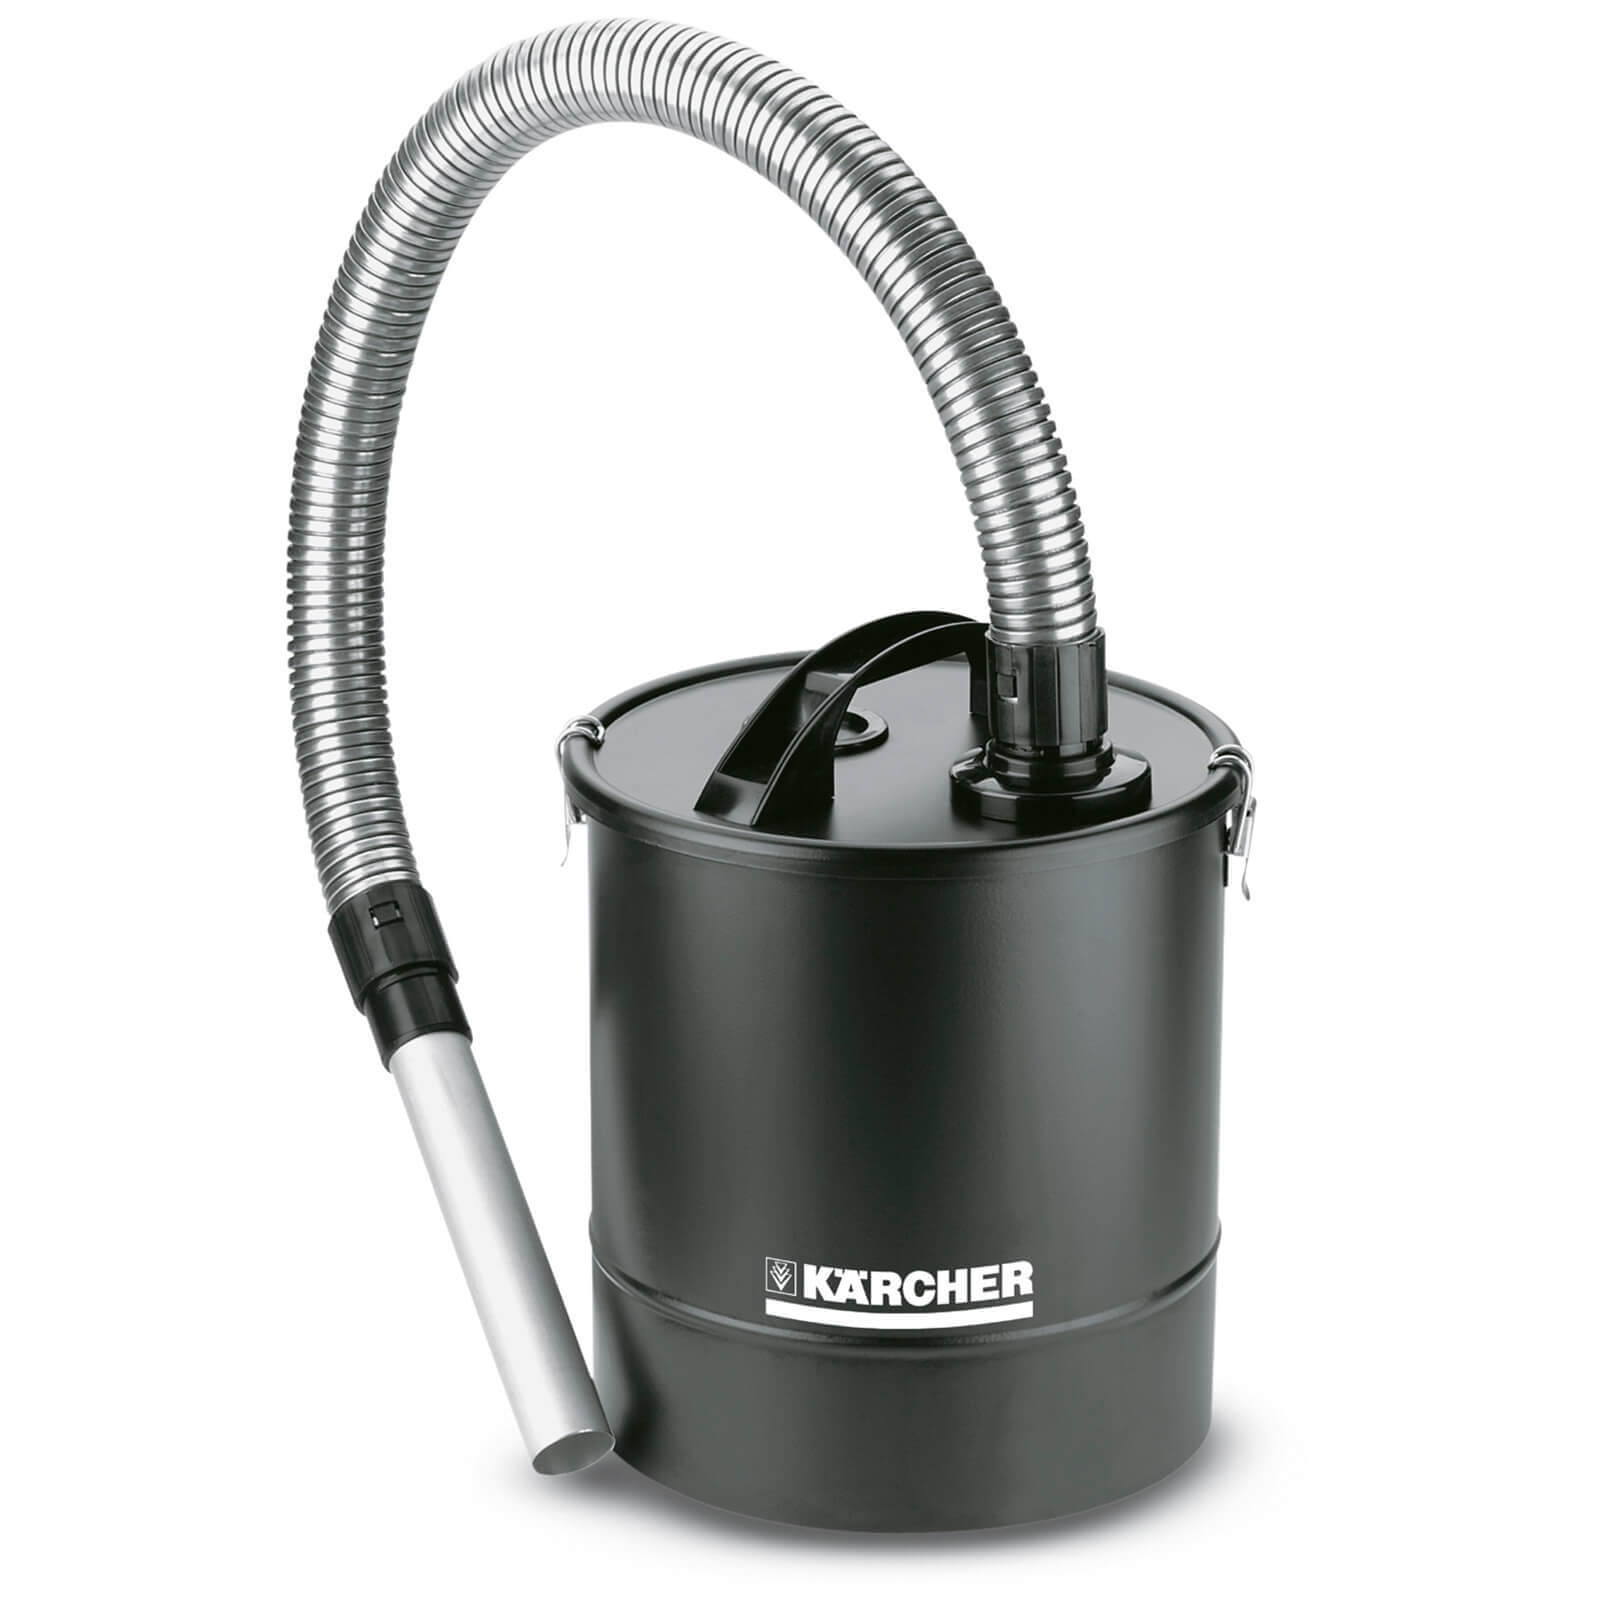 Karcher Premium Dirt and Ash Filter Attachment for MV and WD Vacuum Cleaners